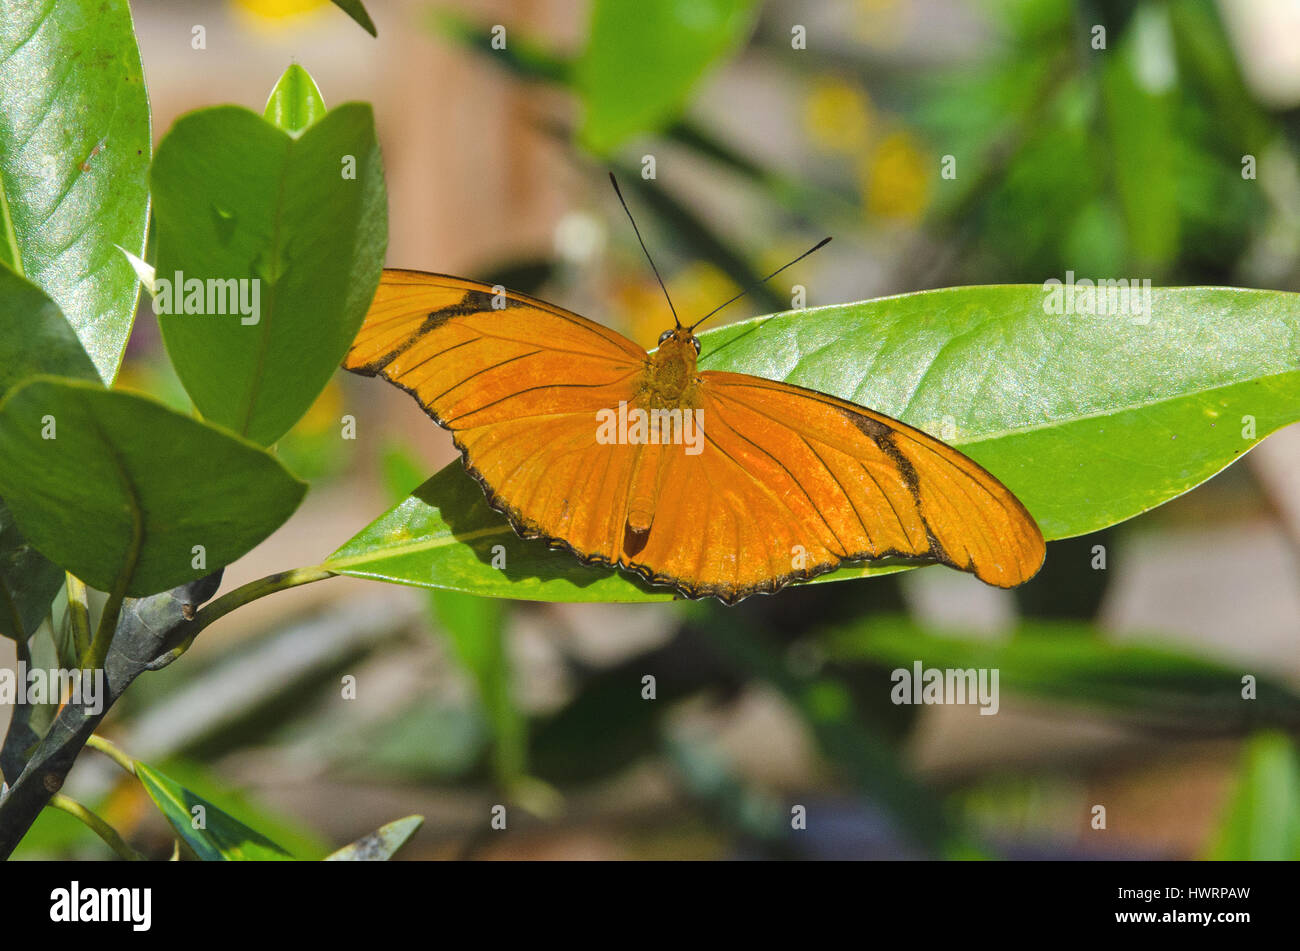 Julia Butterfly pauses to rest on green leaves. - Stock Image